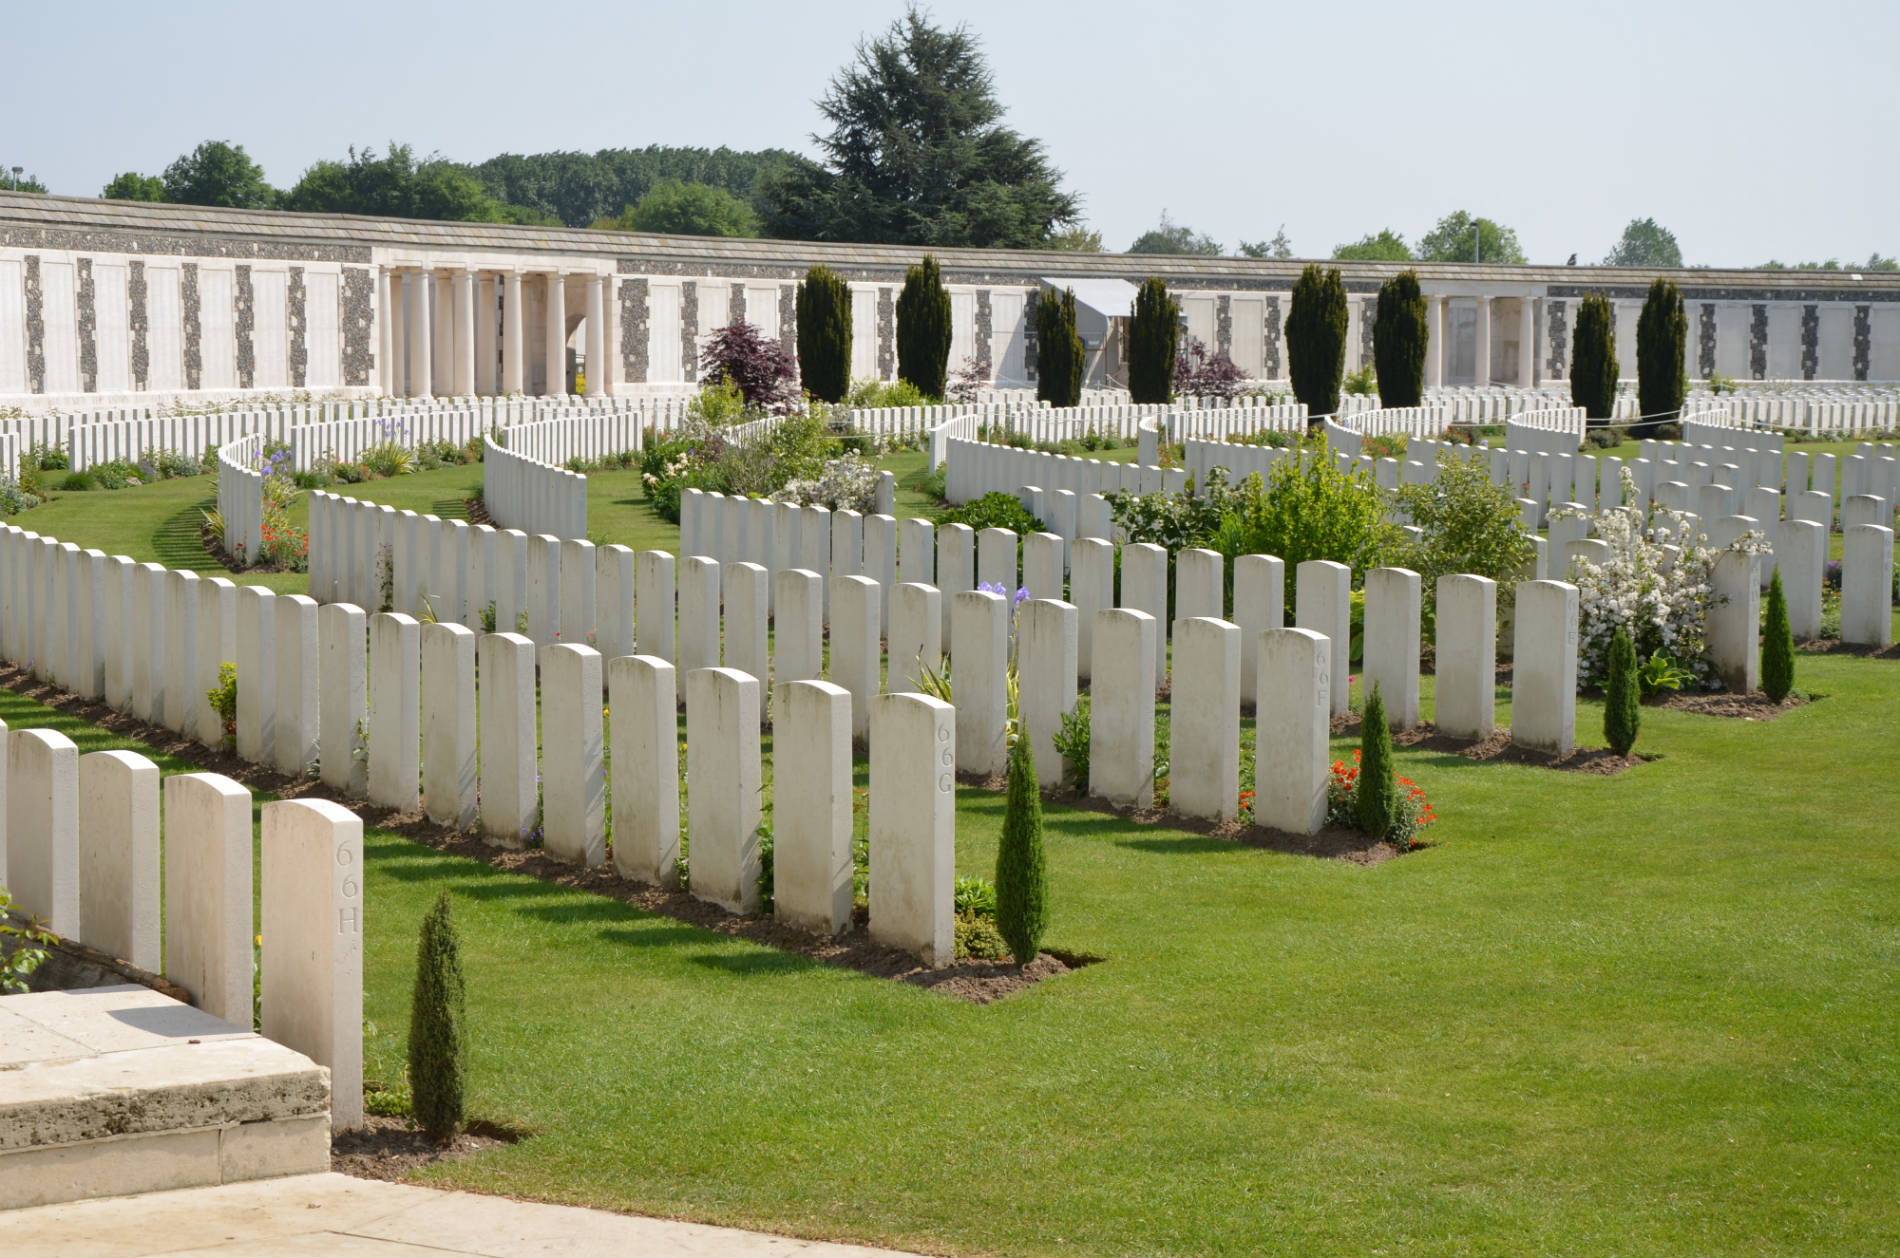 The graves of Tyne Cot cemetery.